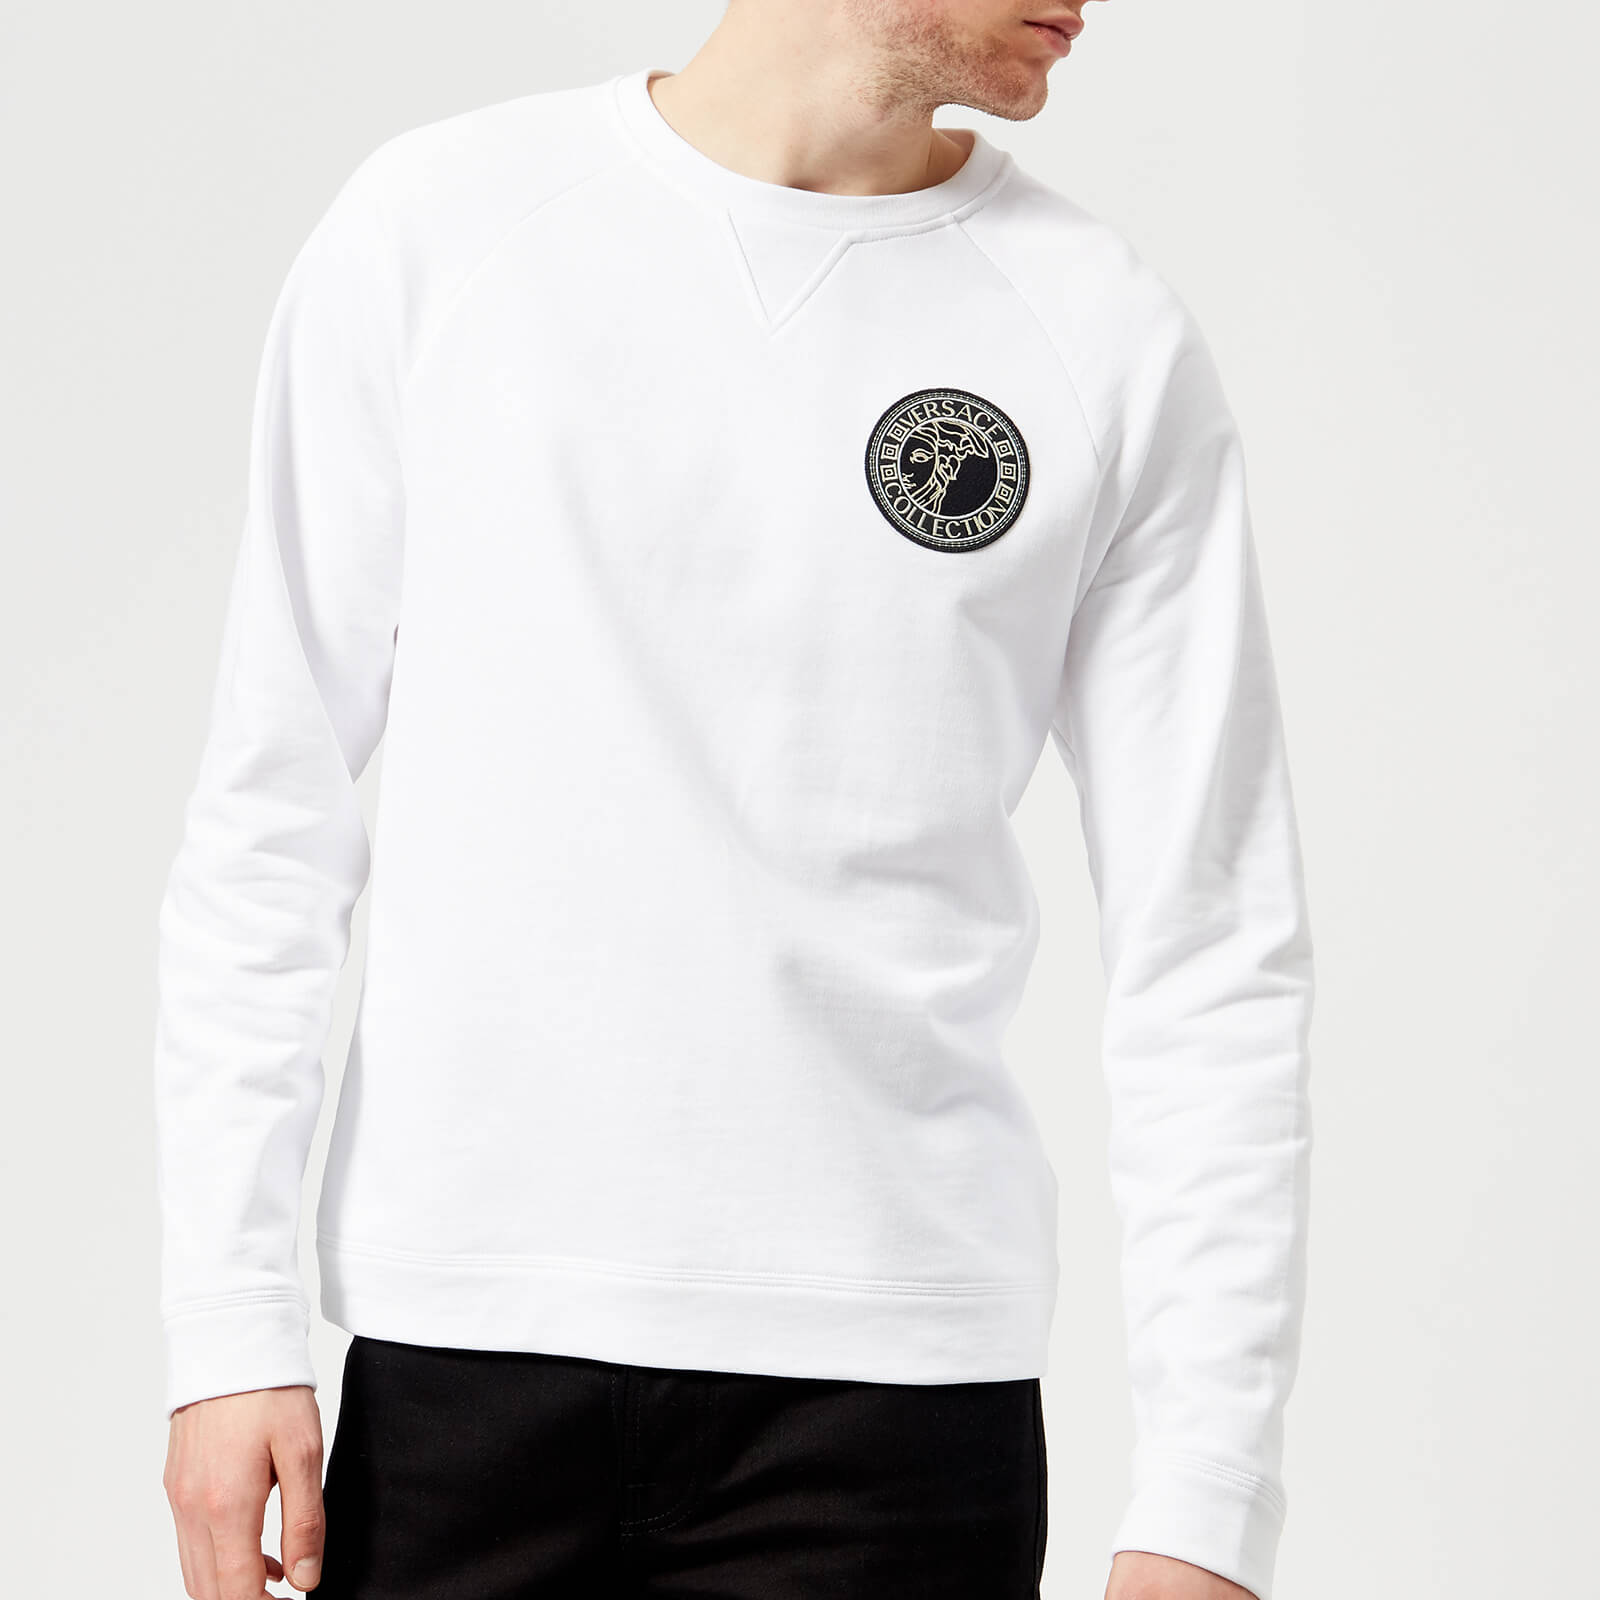 6a58d88a390ca Versace Collection Men s Round Logo Sweatshirt - Bianco - Free UK Delivery  over £50